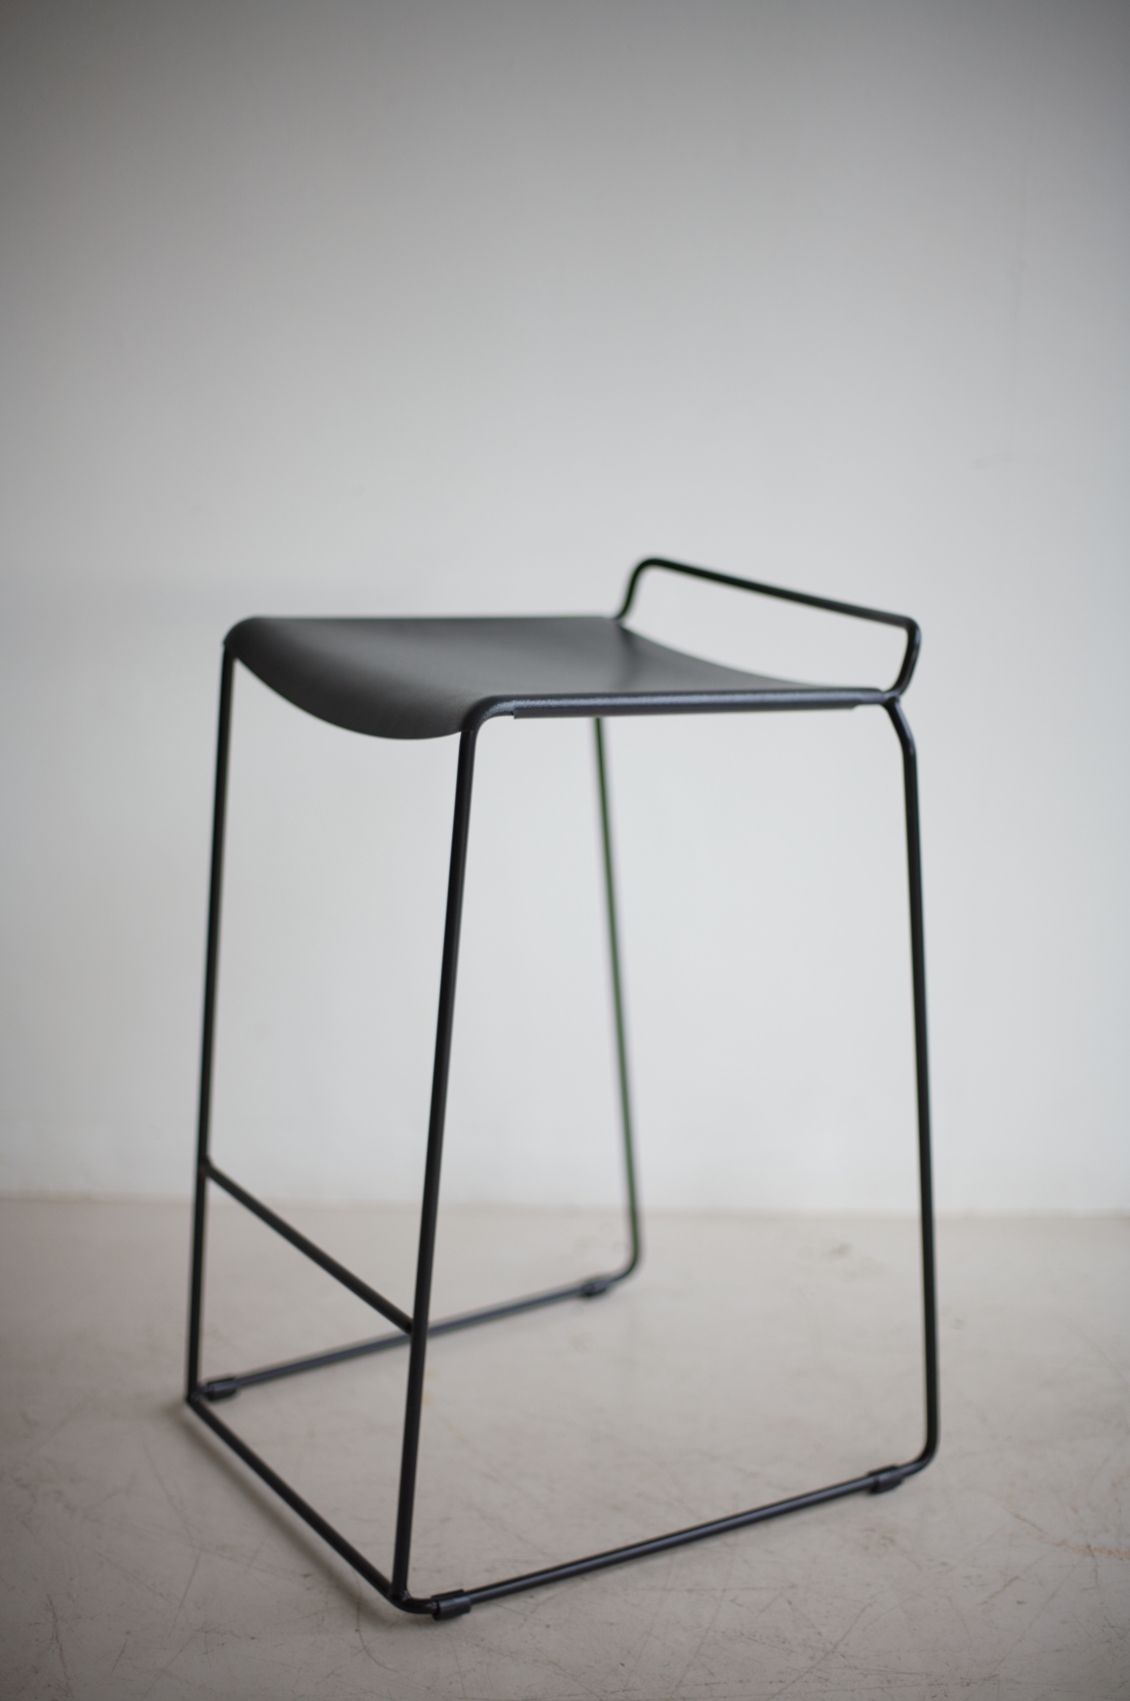 Gallery Of Uccio Stool By Barbera Local Australian Furniture, Lighting & Object Design Melbourne, Vic Image 2